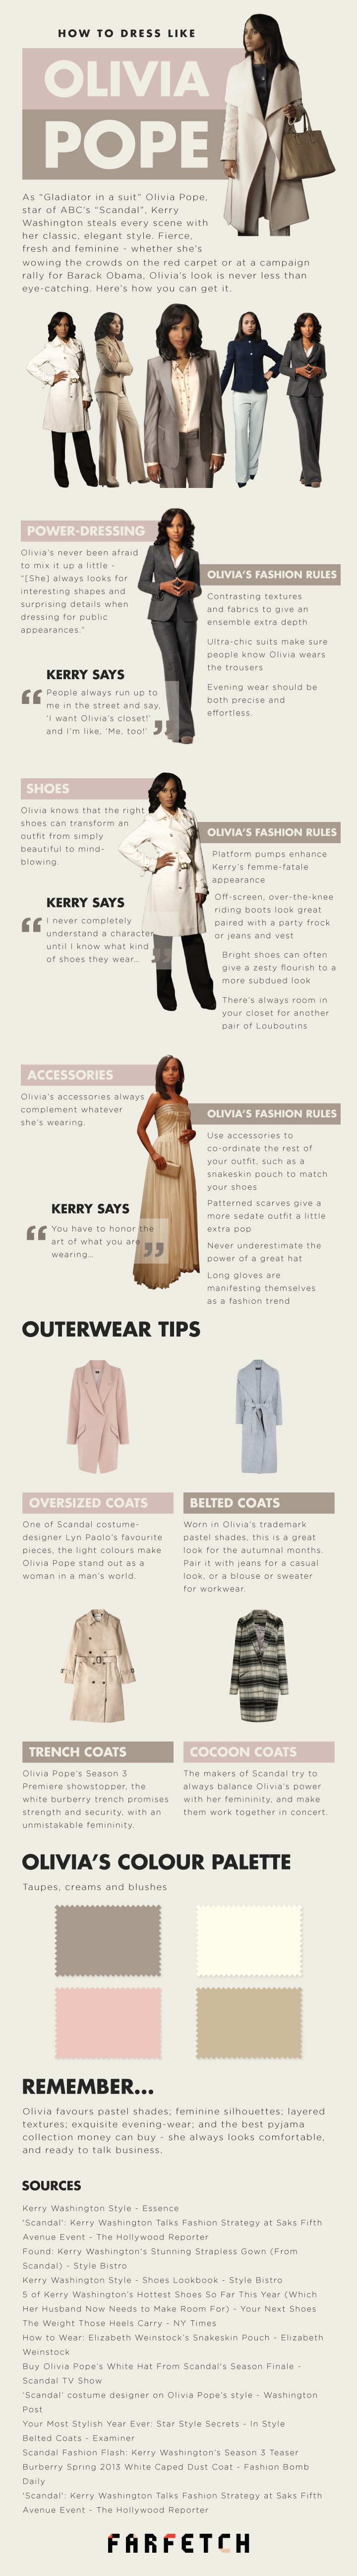 Olivia Pope Style Guide-Infographic